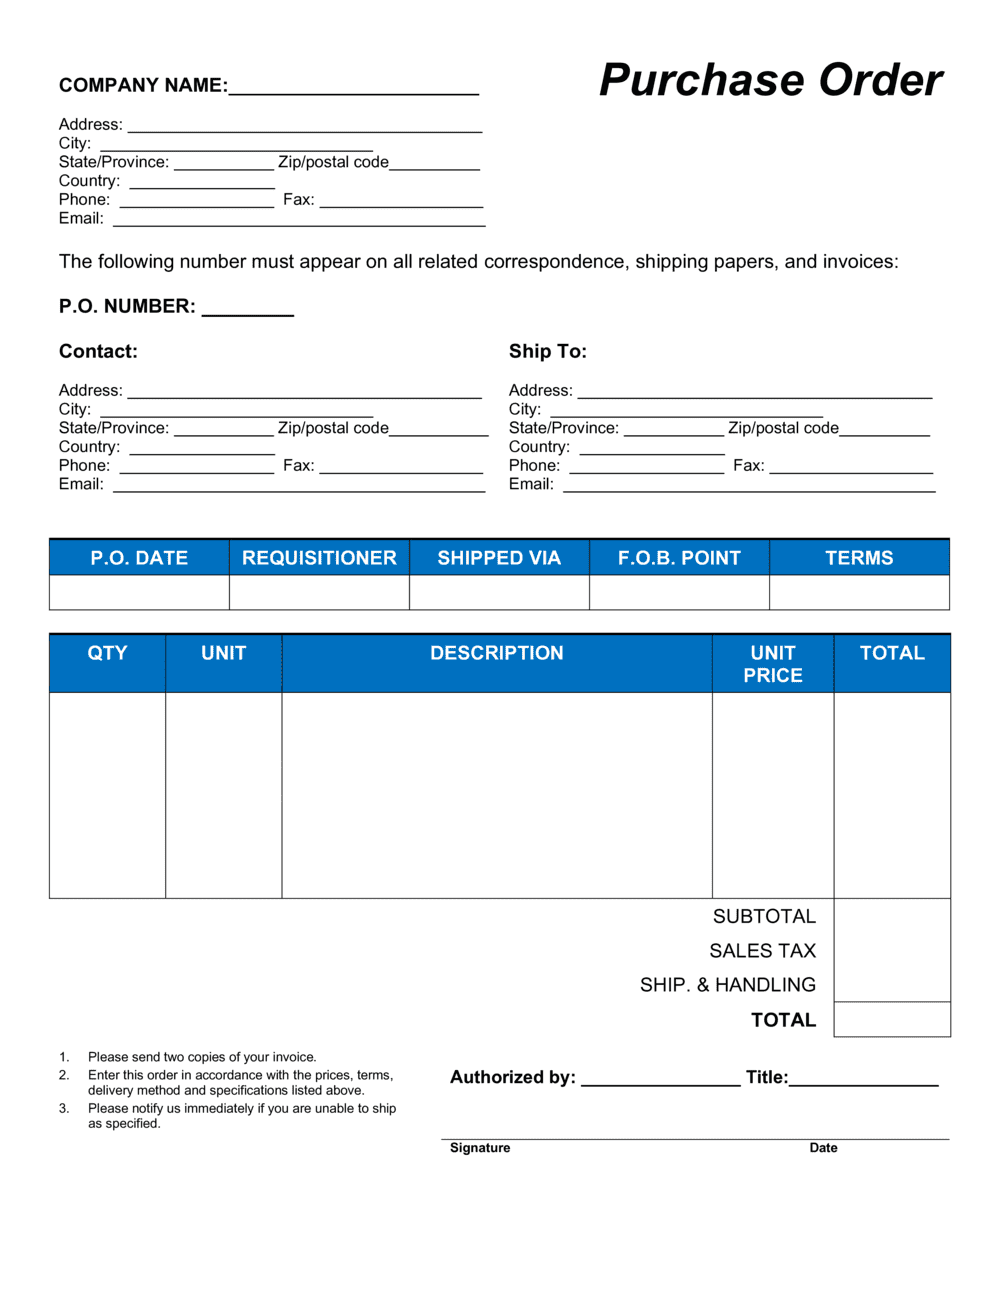 Business-in-a-Box's Purchase Order Template